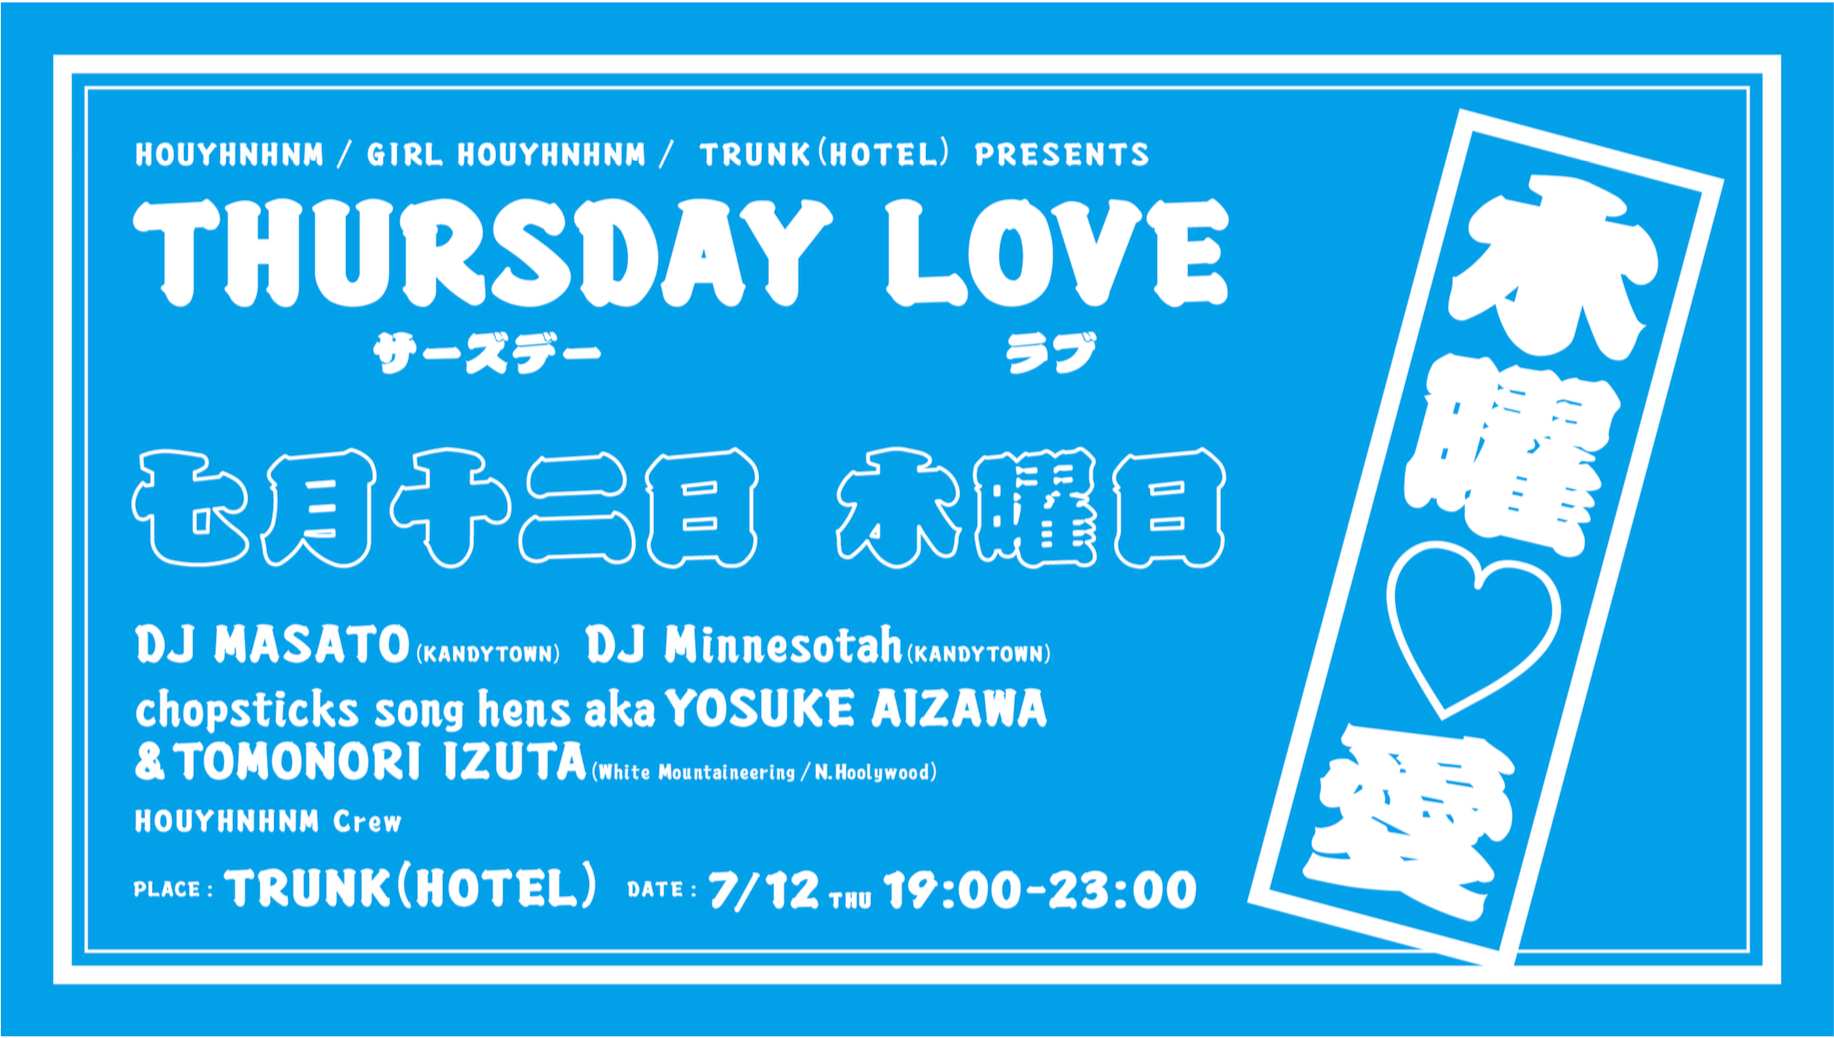 2018.7.12 THURSDAY LOVE